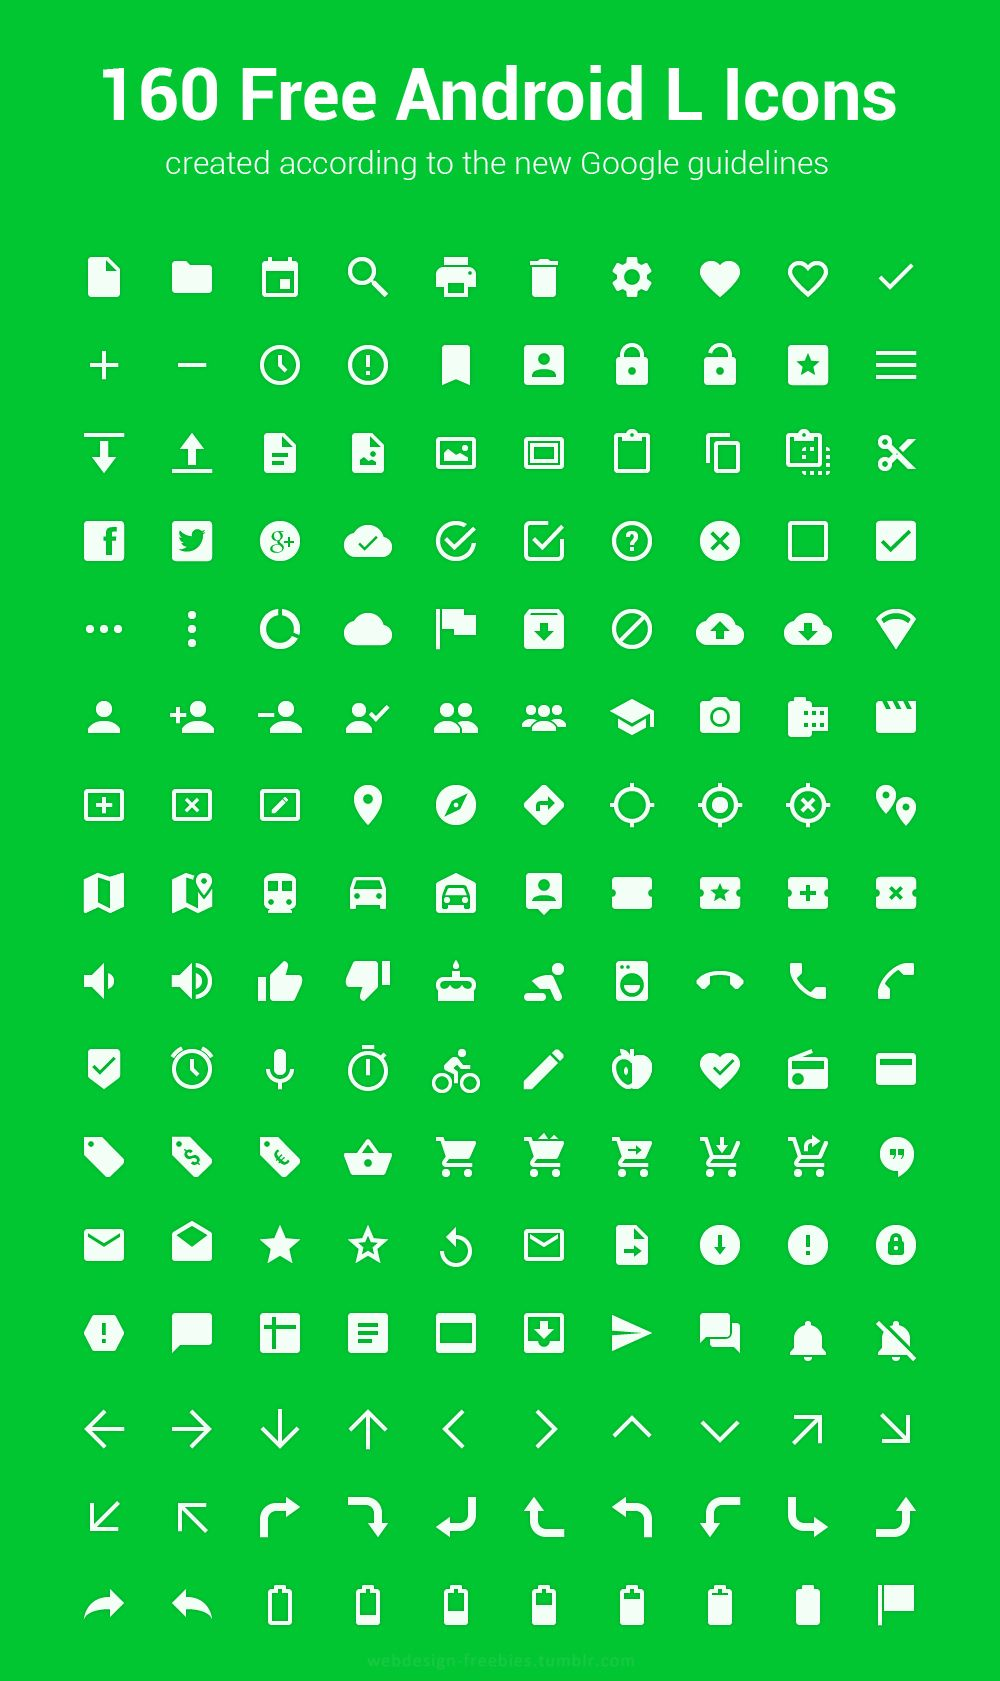 160 Free Android L Icons Web design freebies, Android